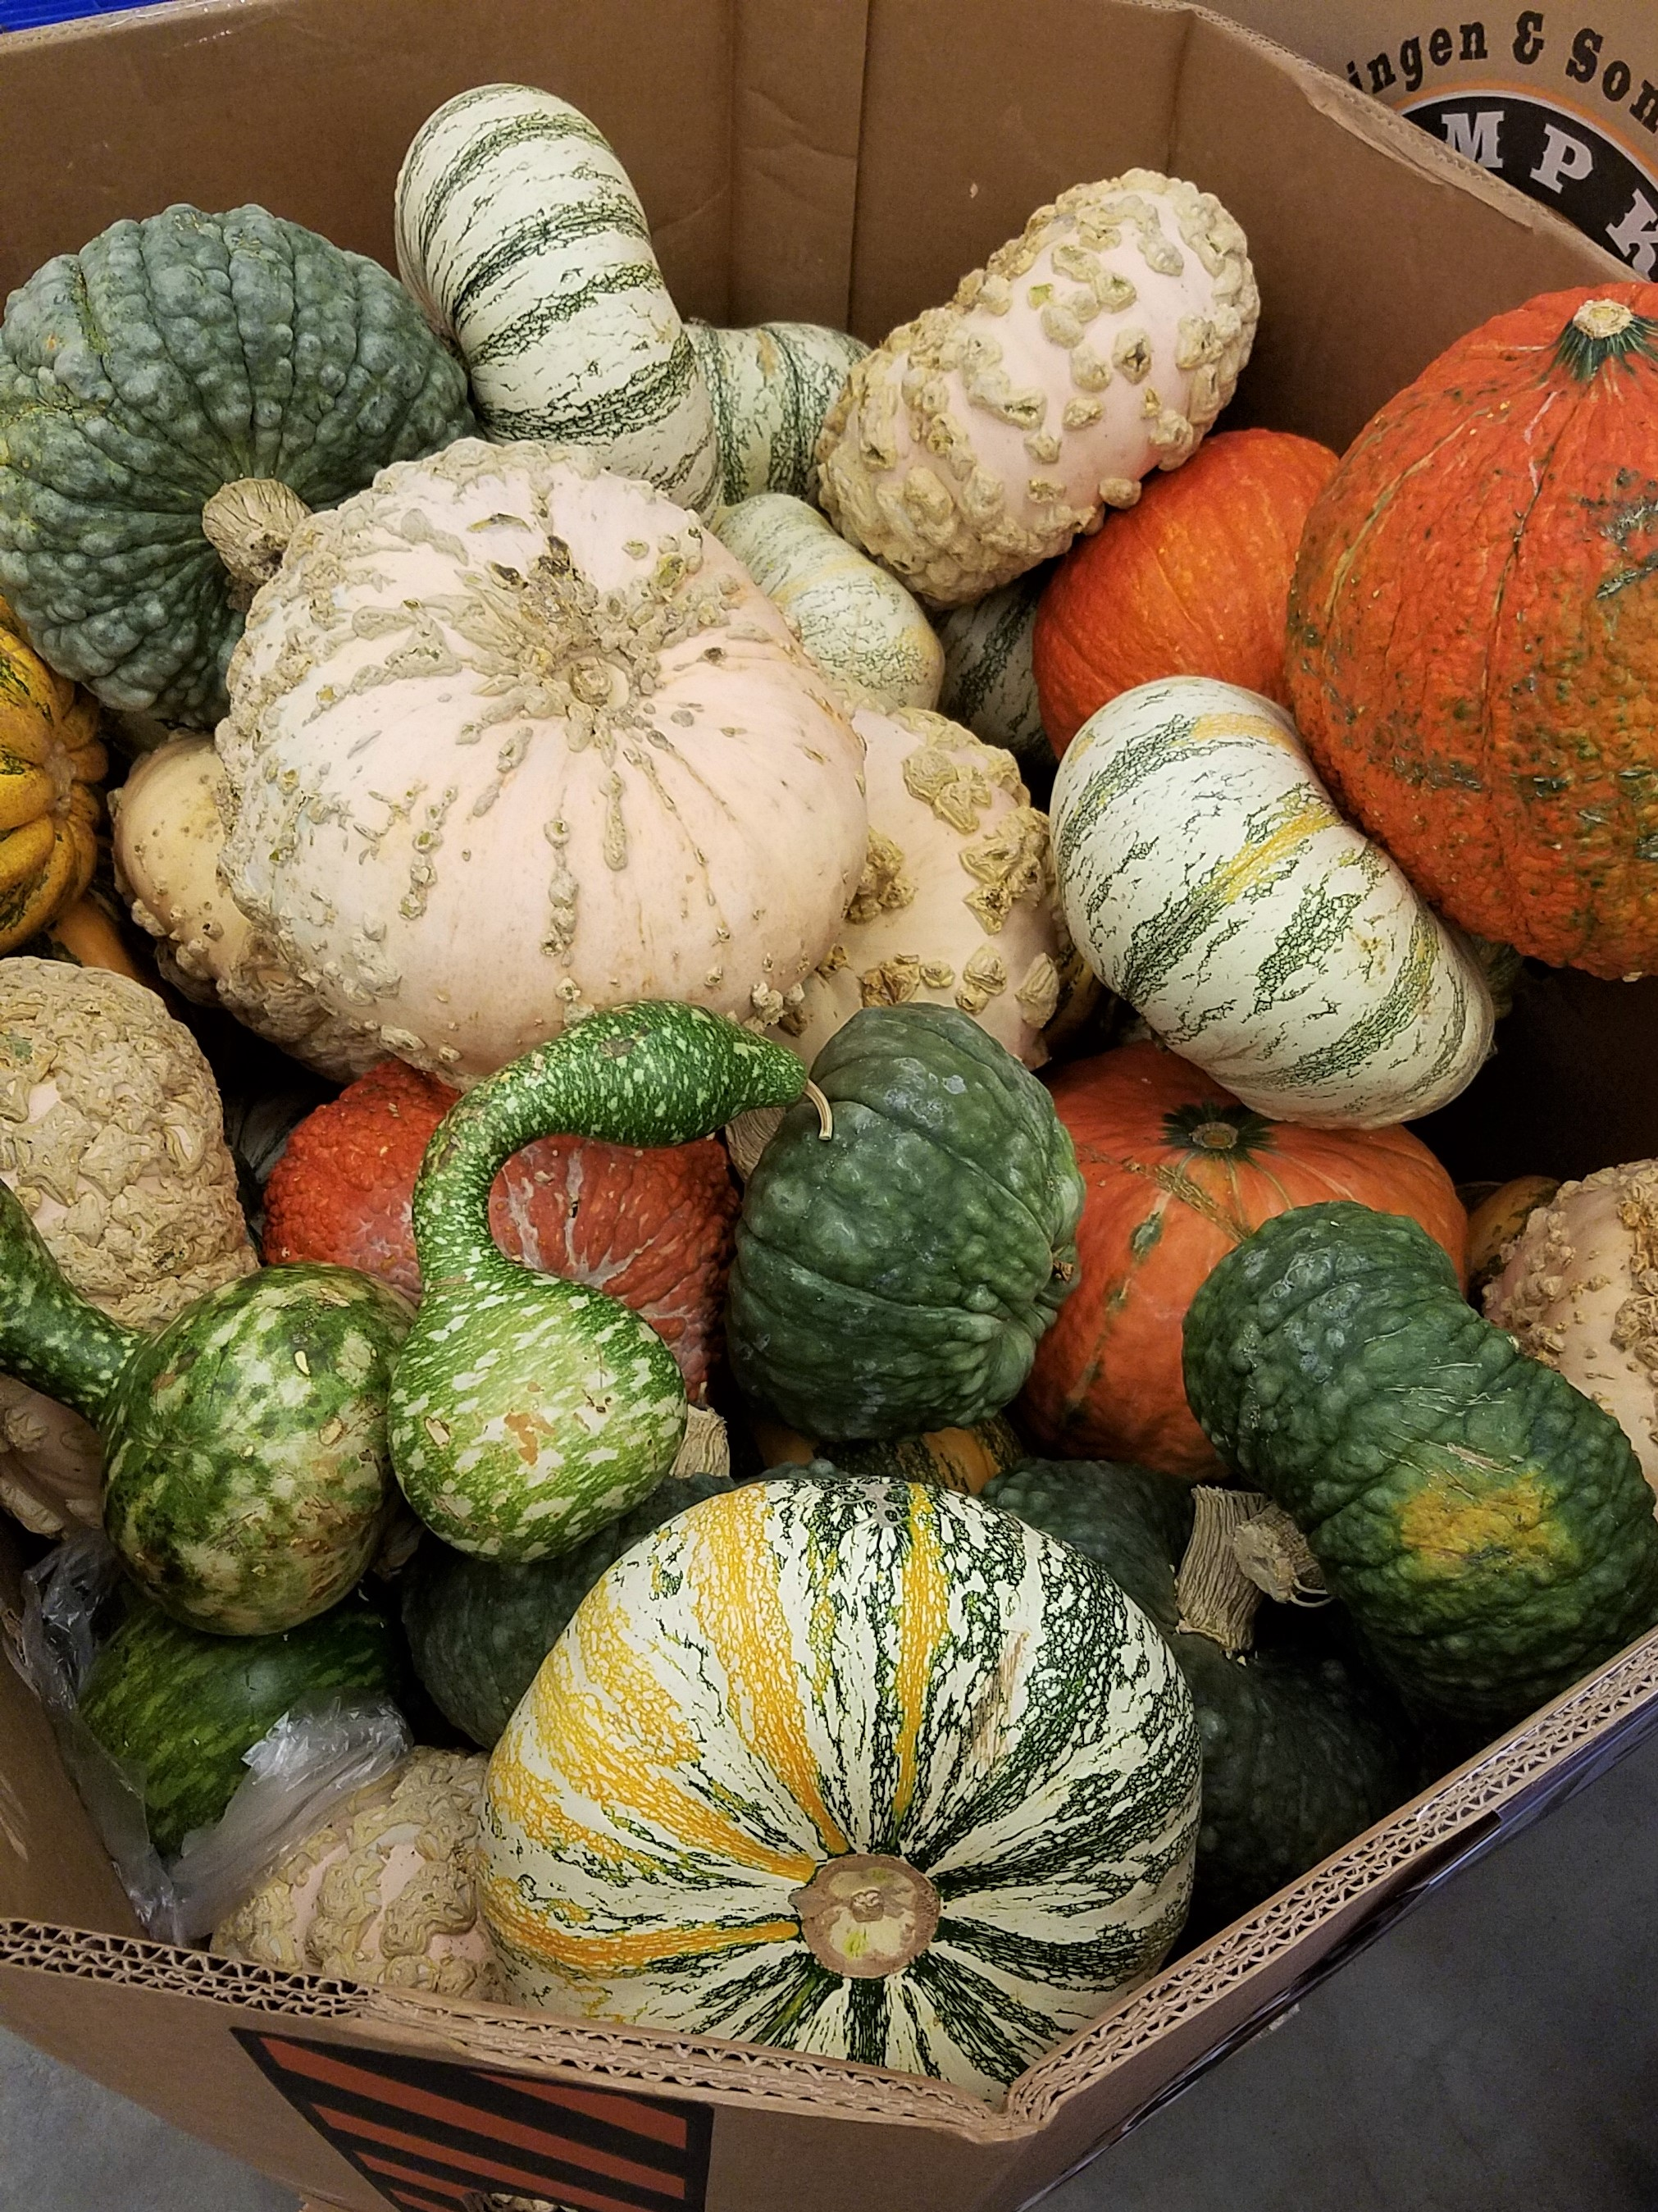 Delicious Seasonal produce